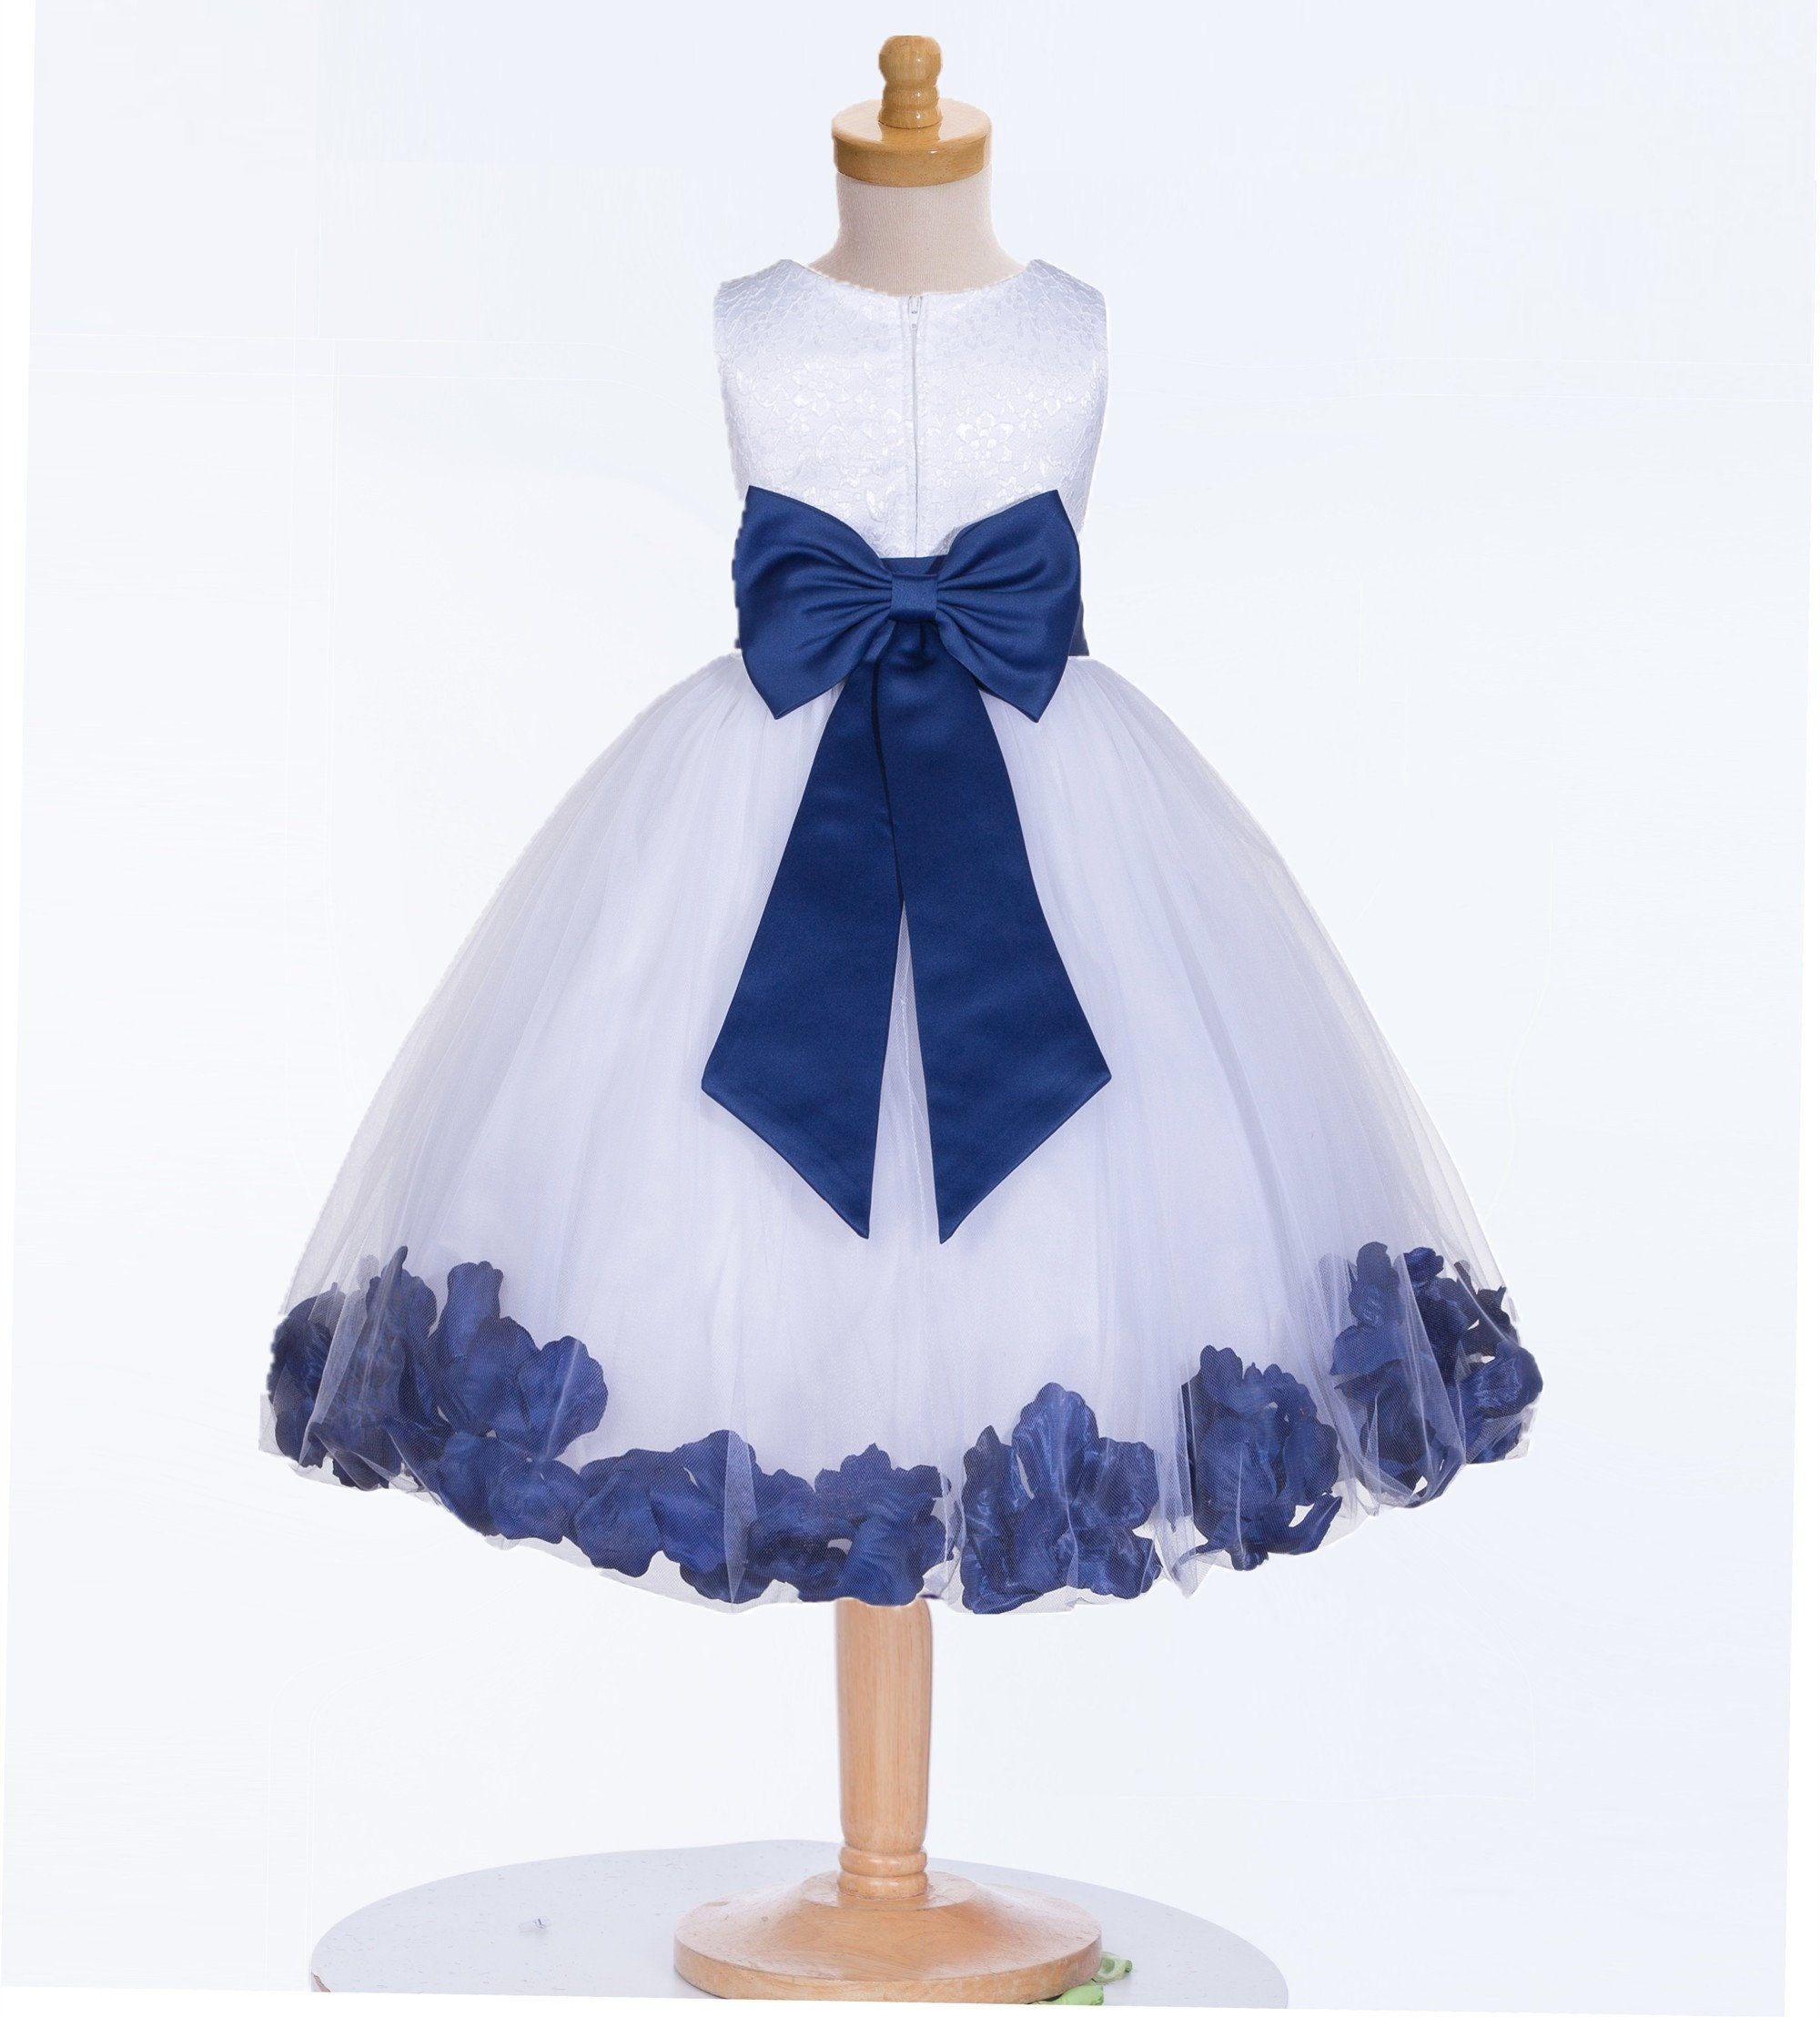 0ff24c19a3d White Flower Girl Dress With Pale Blue Sash - Data Dynamic AG